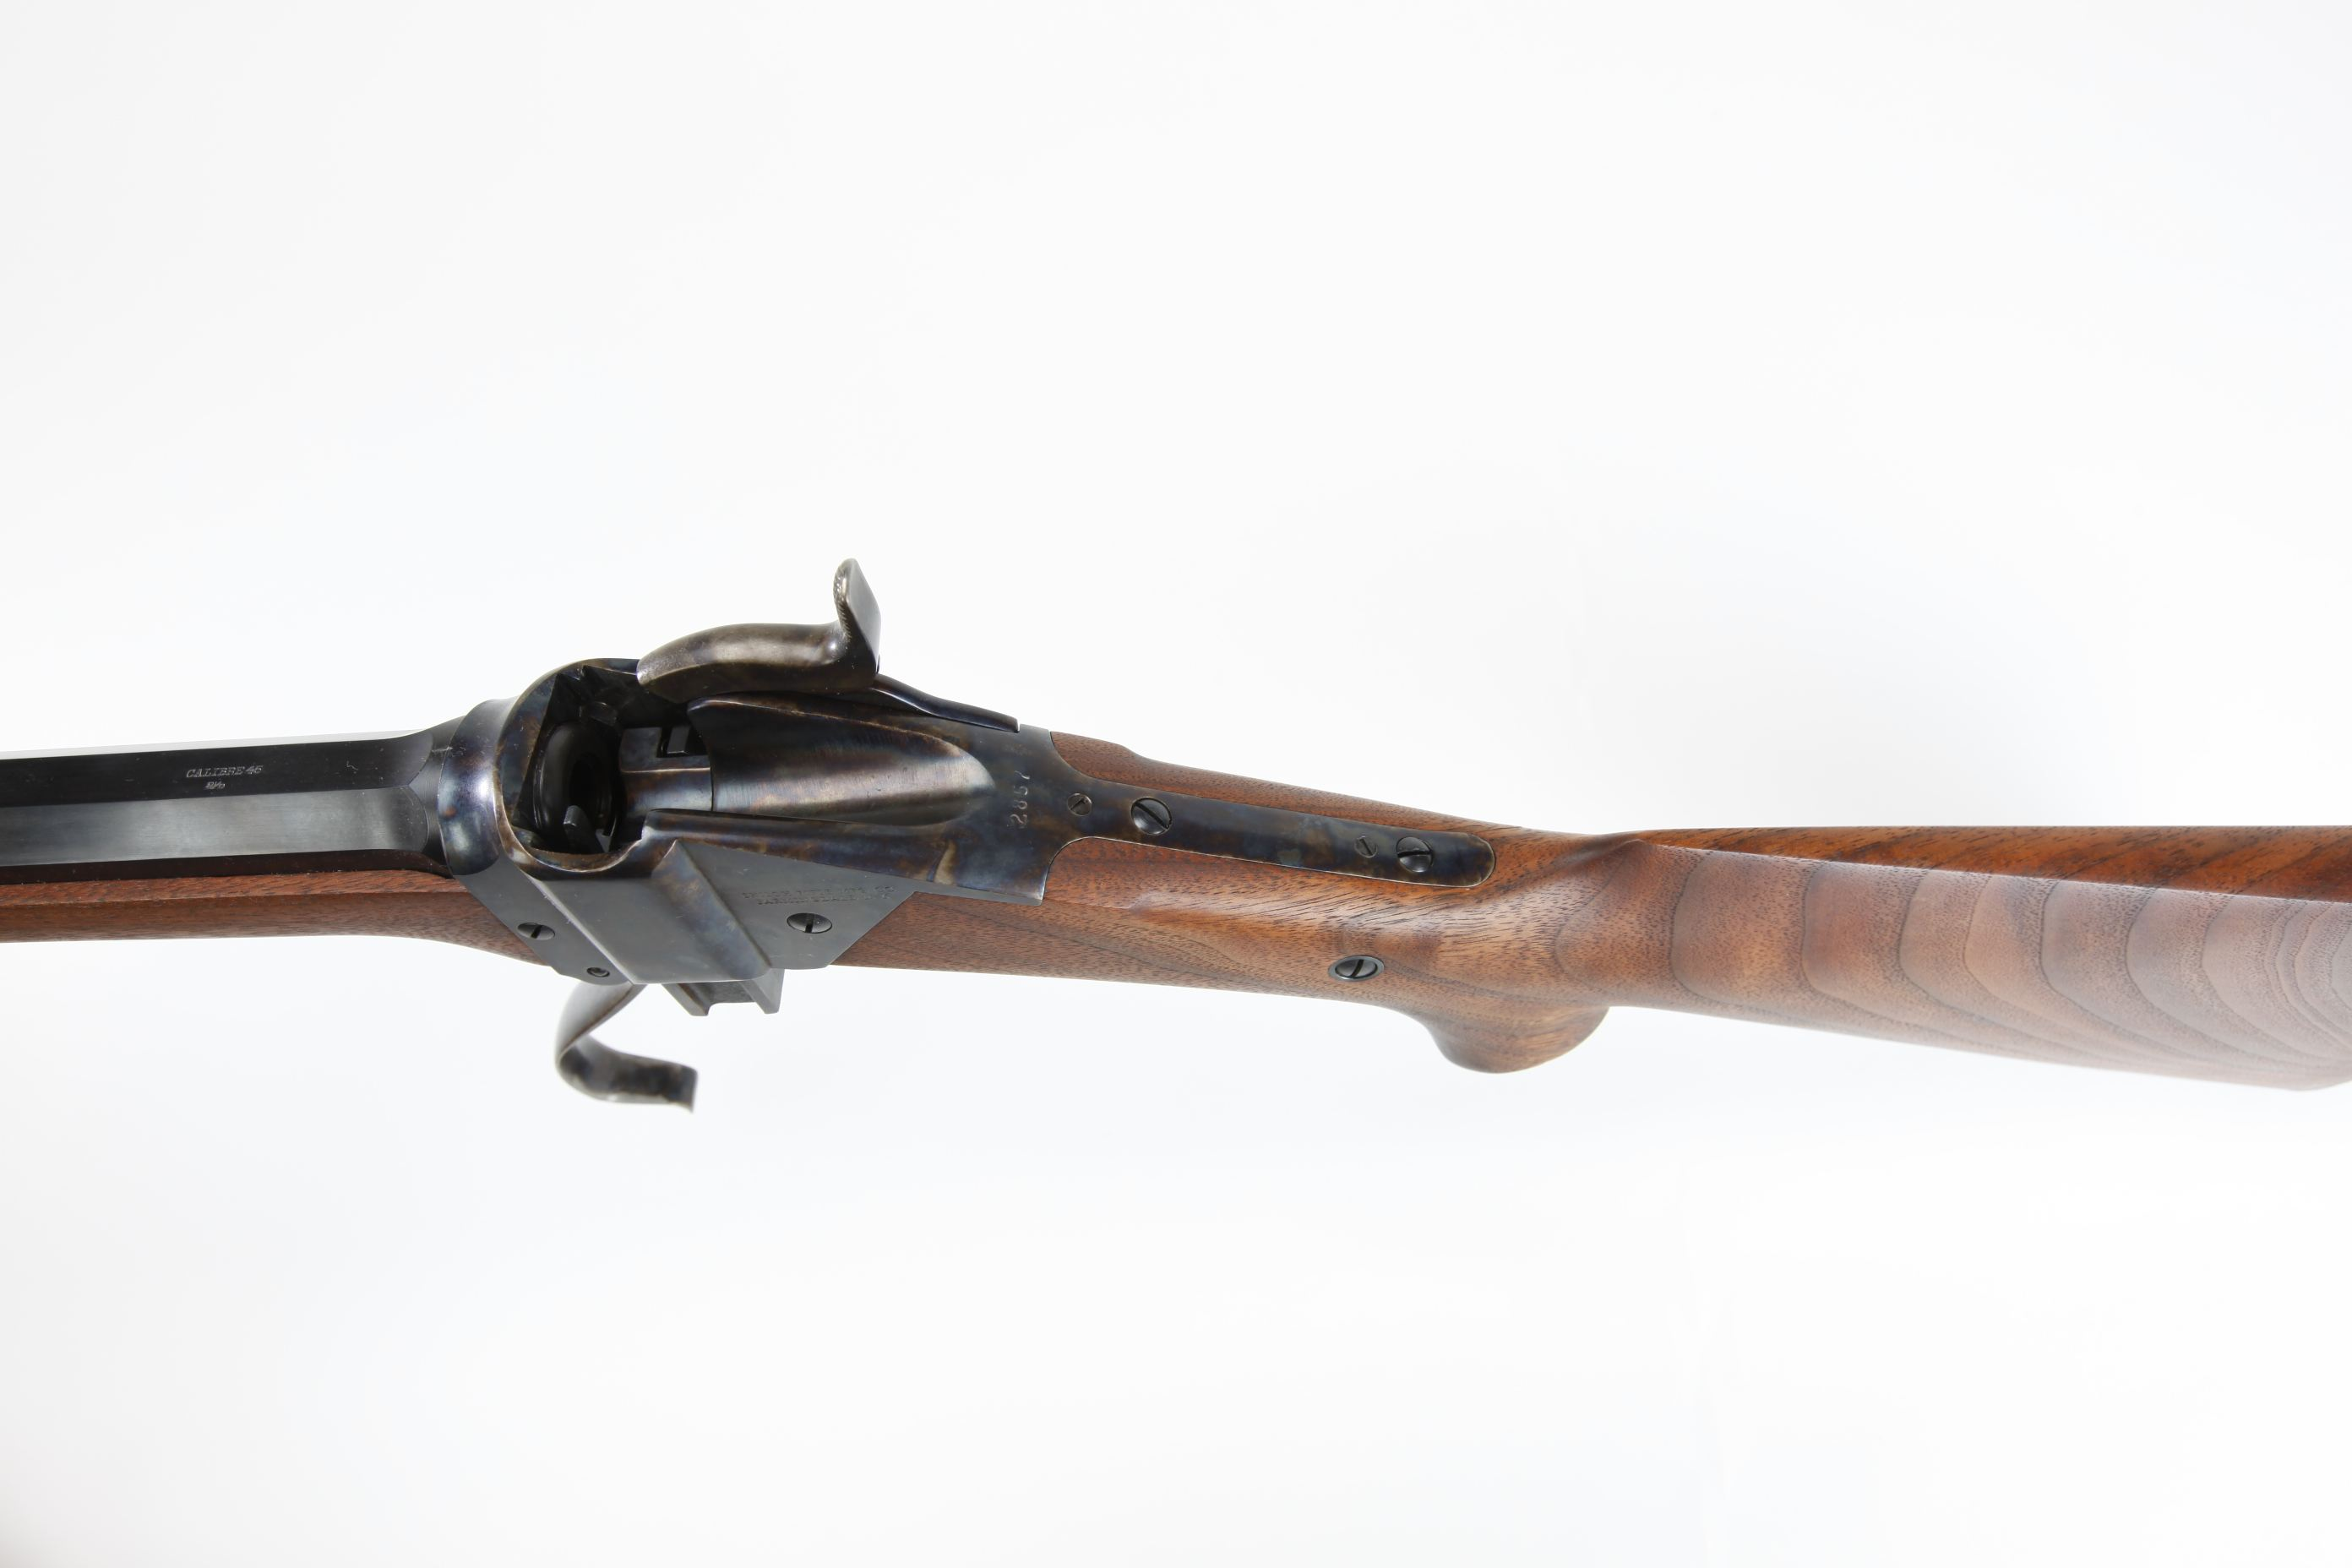 Shiloh Products Model 1874 Sharps Rifle